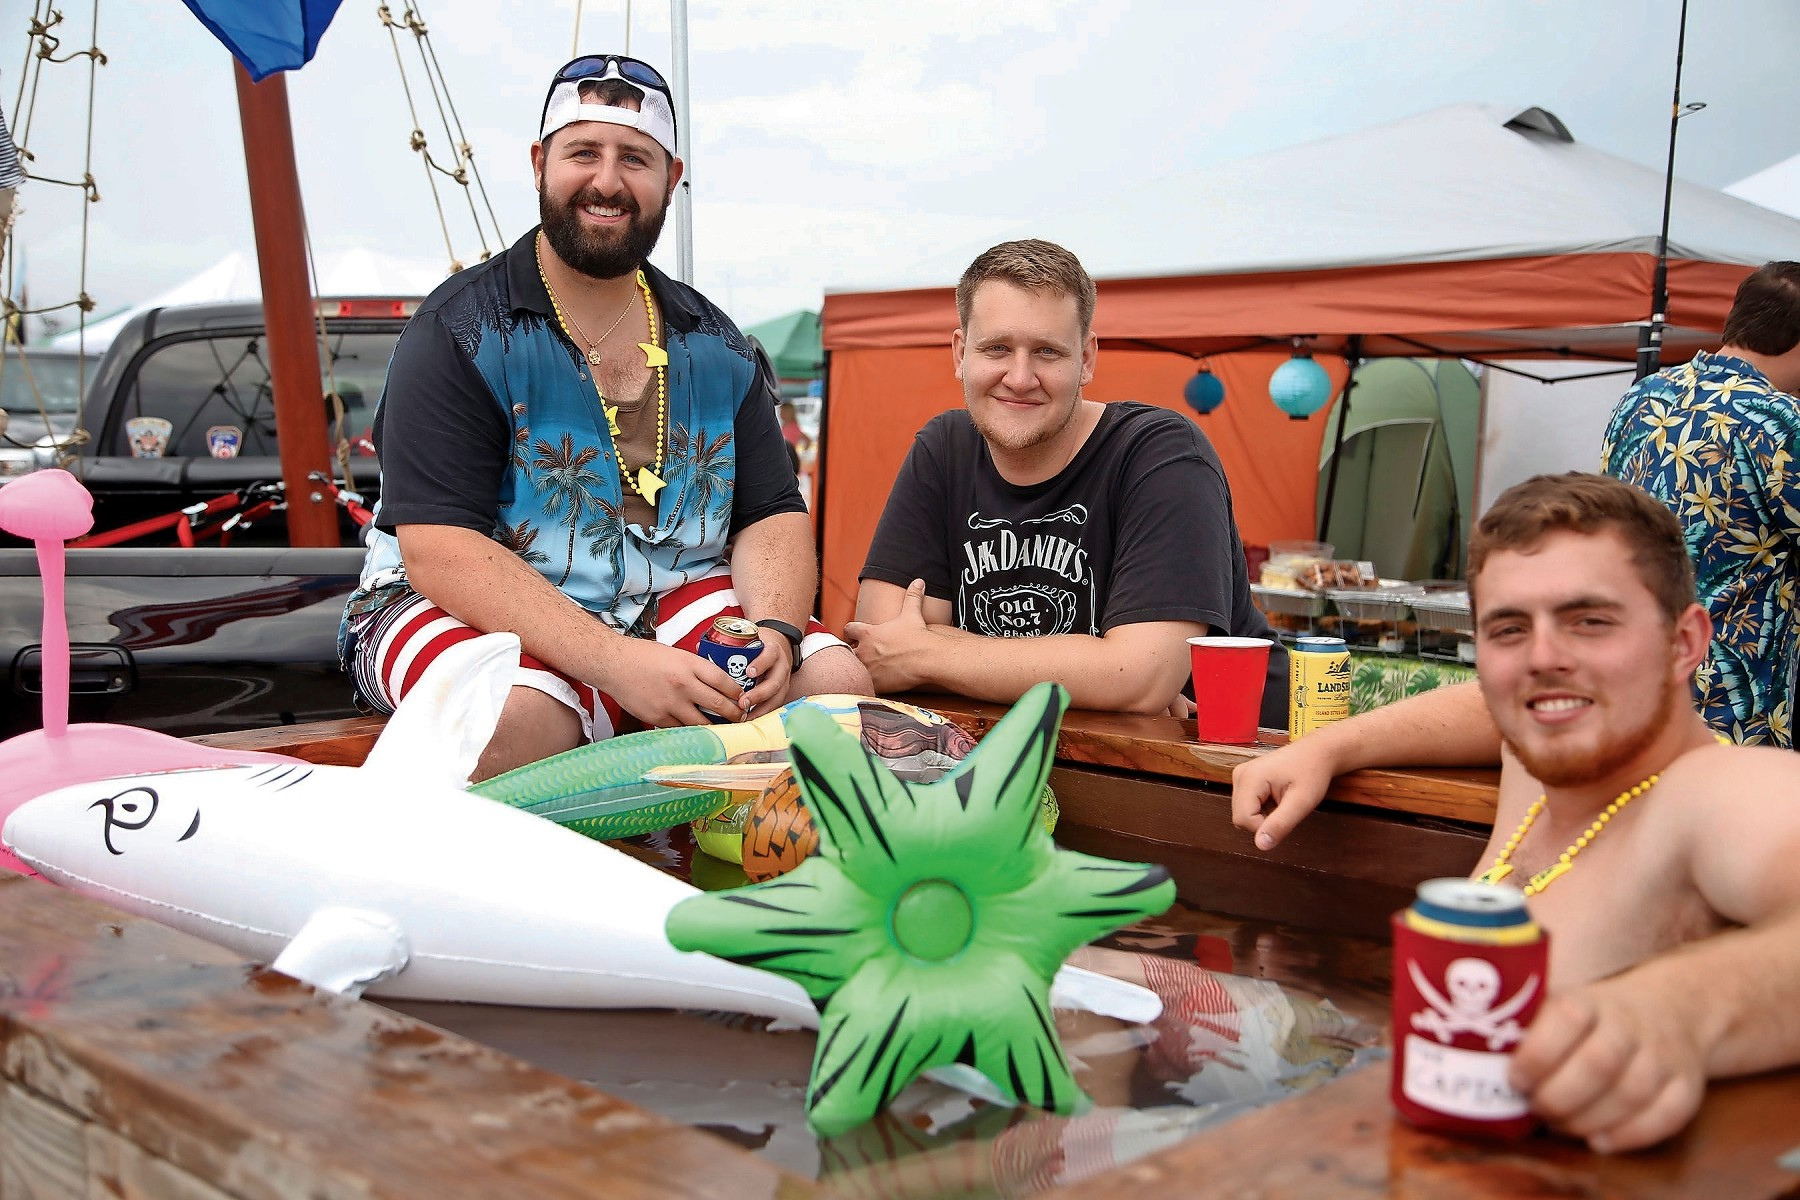 Parrot Head fans went all out for the tailgate. From left, Tony DeCaesar, James Mattes and Nick Fondacaro soaked in their private pirate ship hot tub.